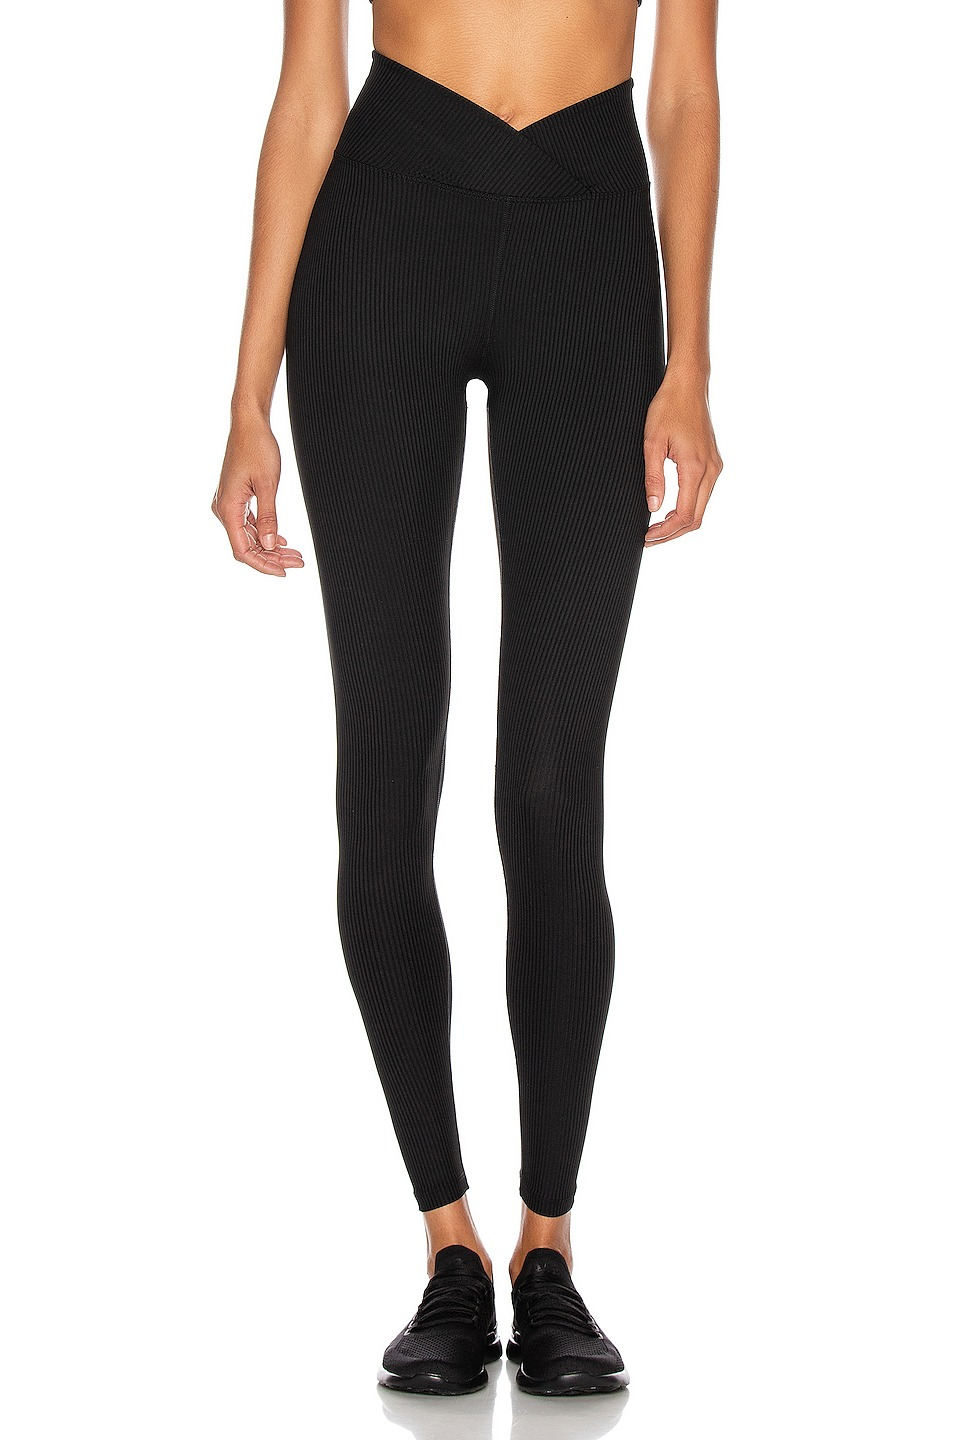 Ribbed Veronica Legging by YEAR OF OURS, available on fwrd.com for EUR74.32 Olivia Culpo Pants Exact Product